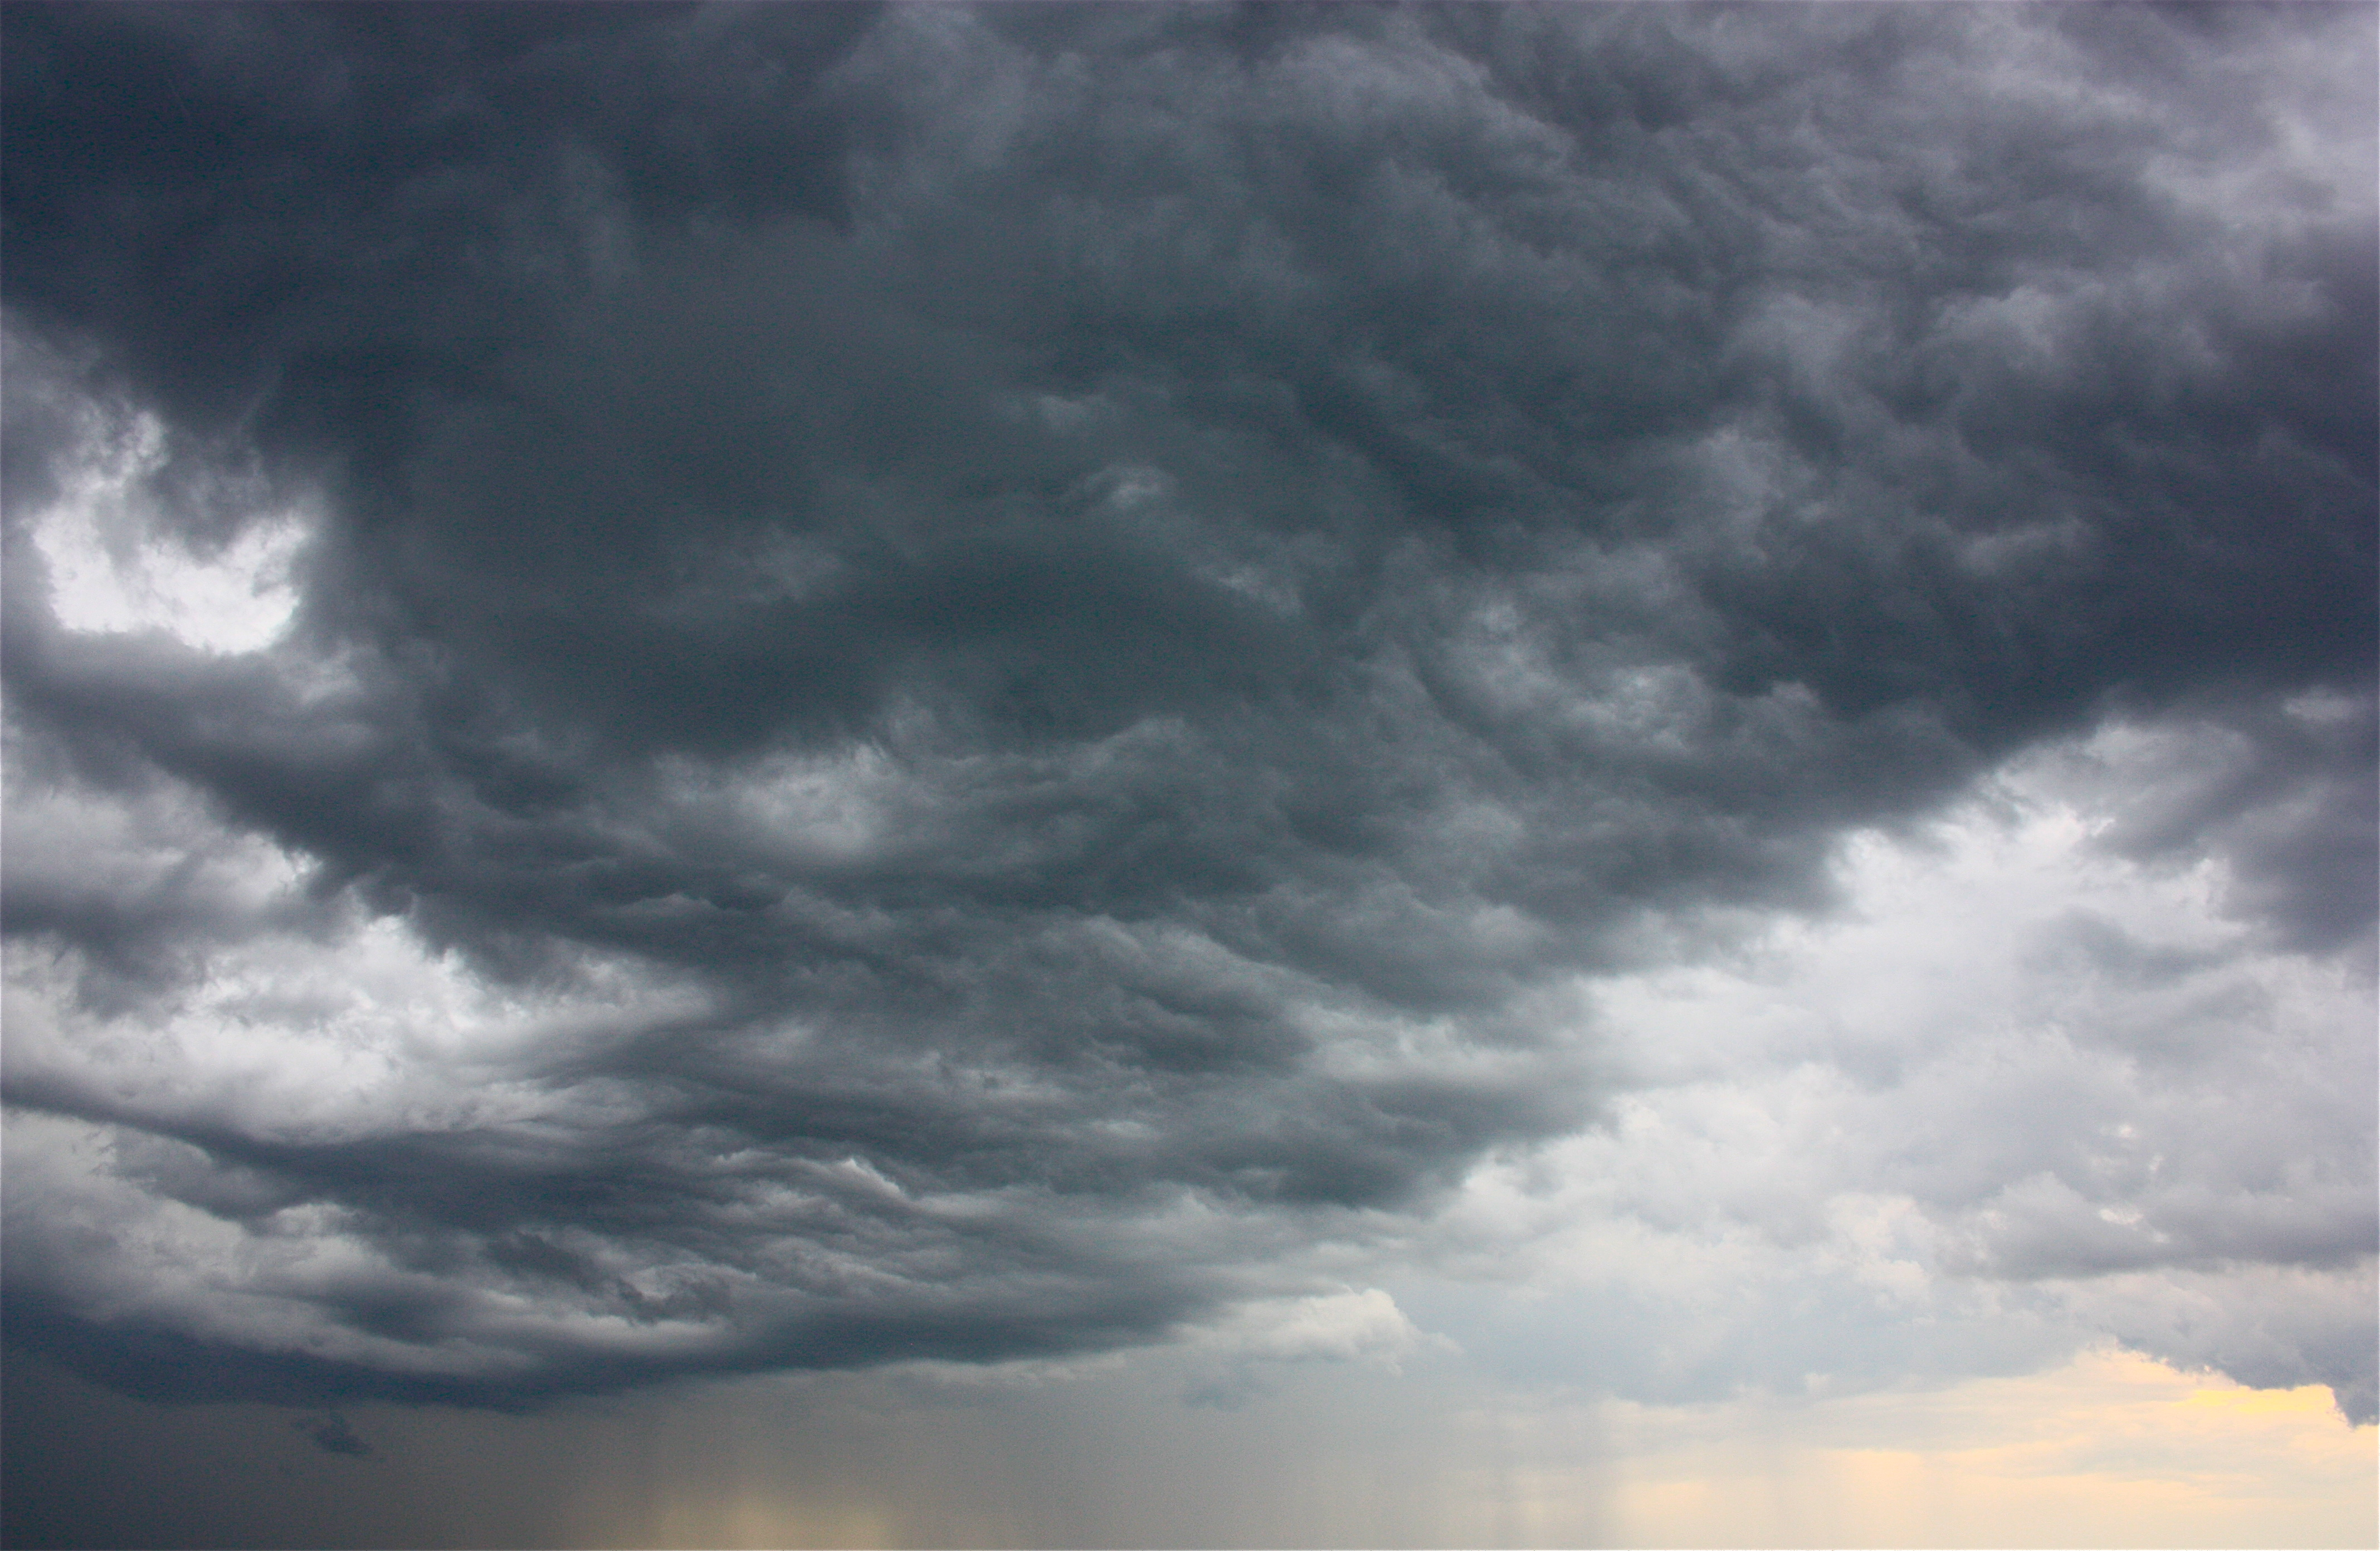 Lake Hartwell Storm Clouds 1